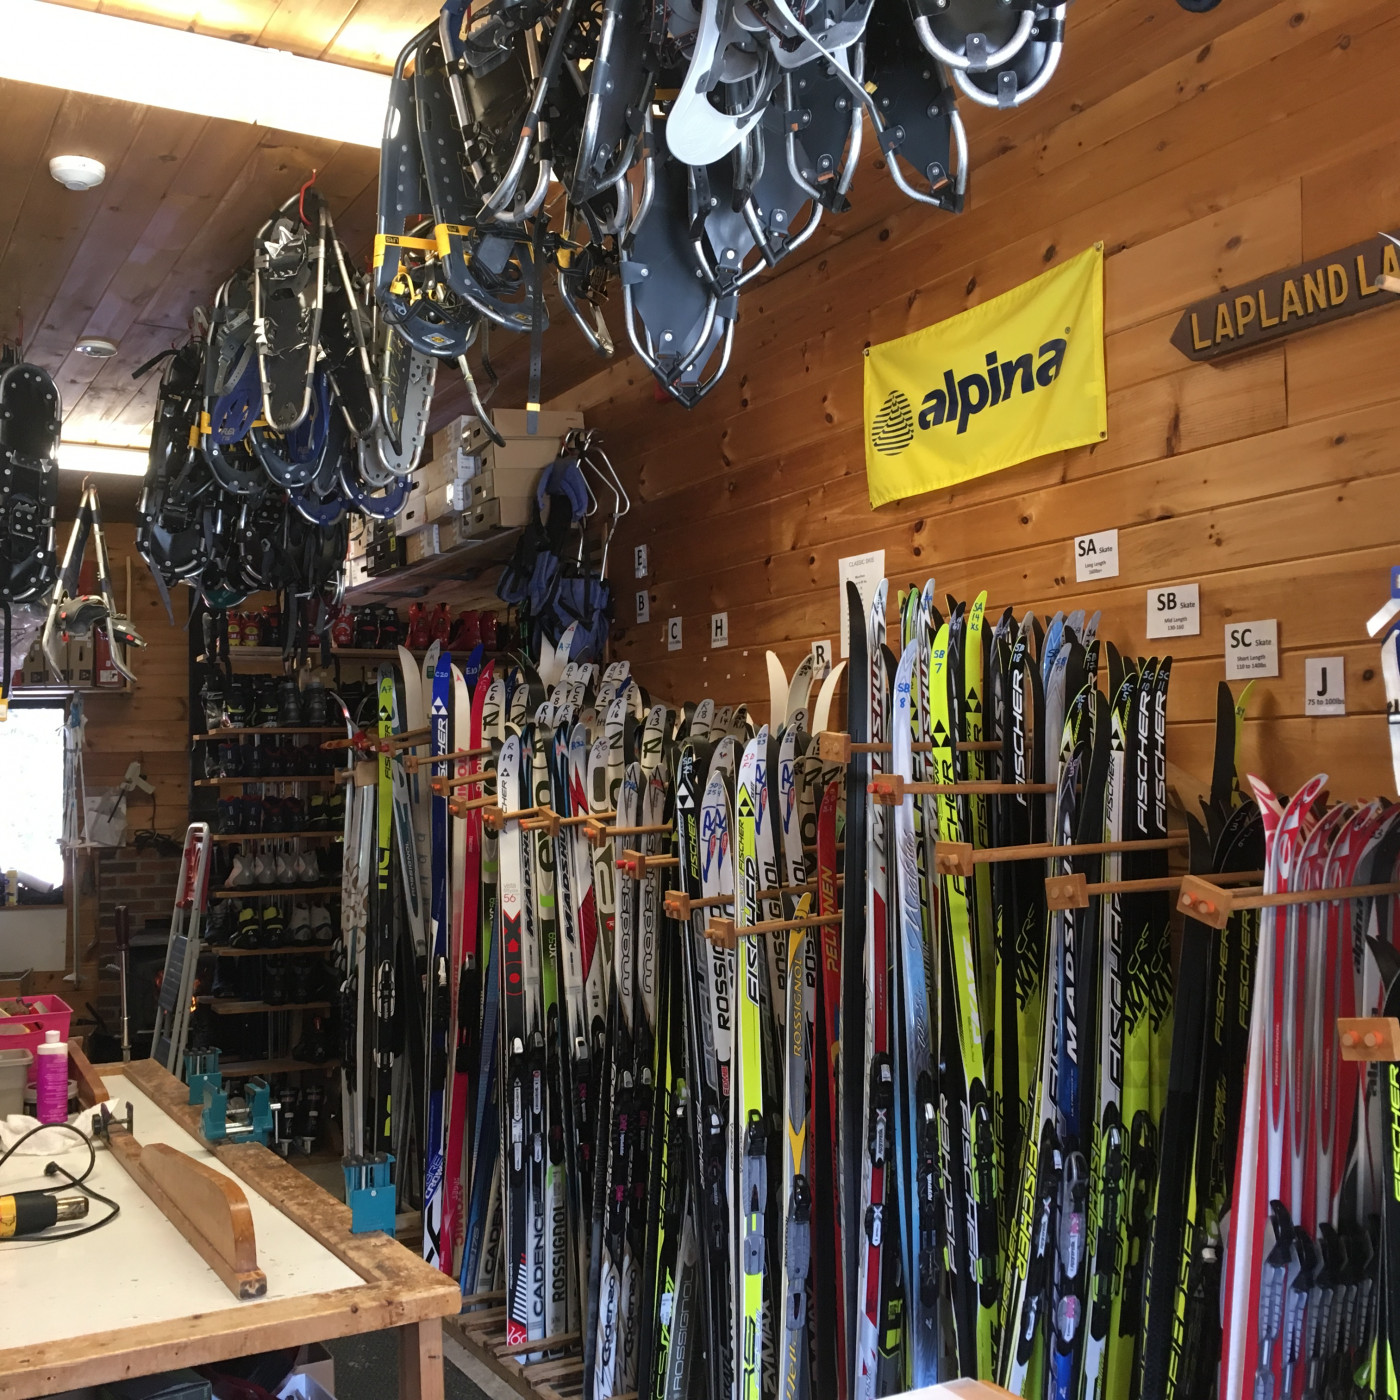 Cross country skis & snowshoes ready for customers in the rental shop